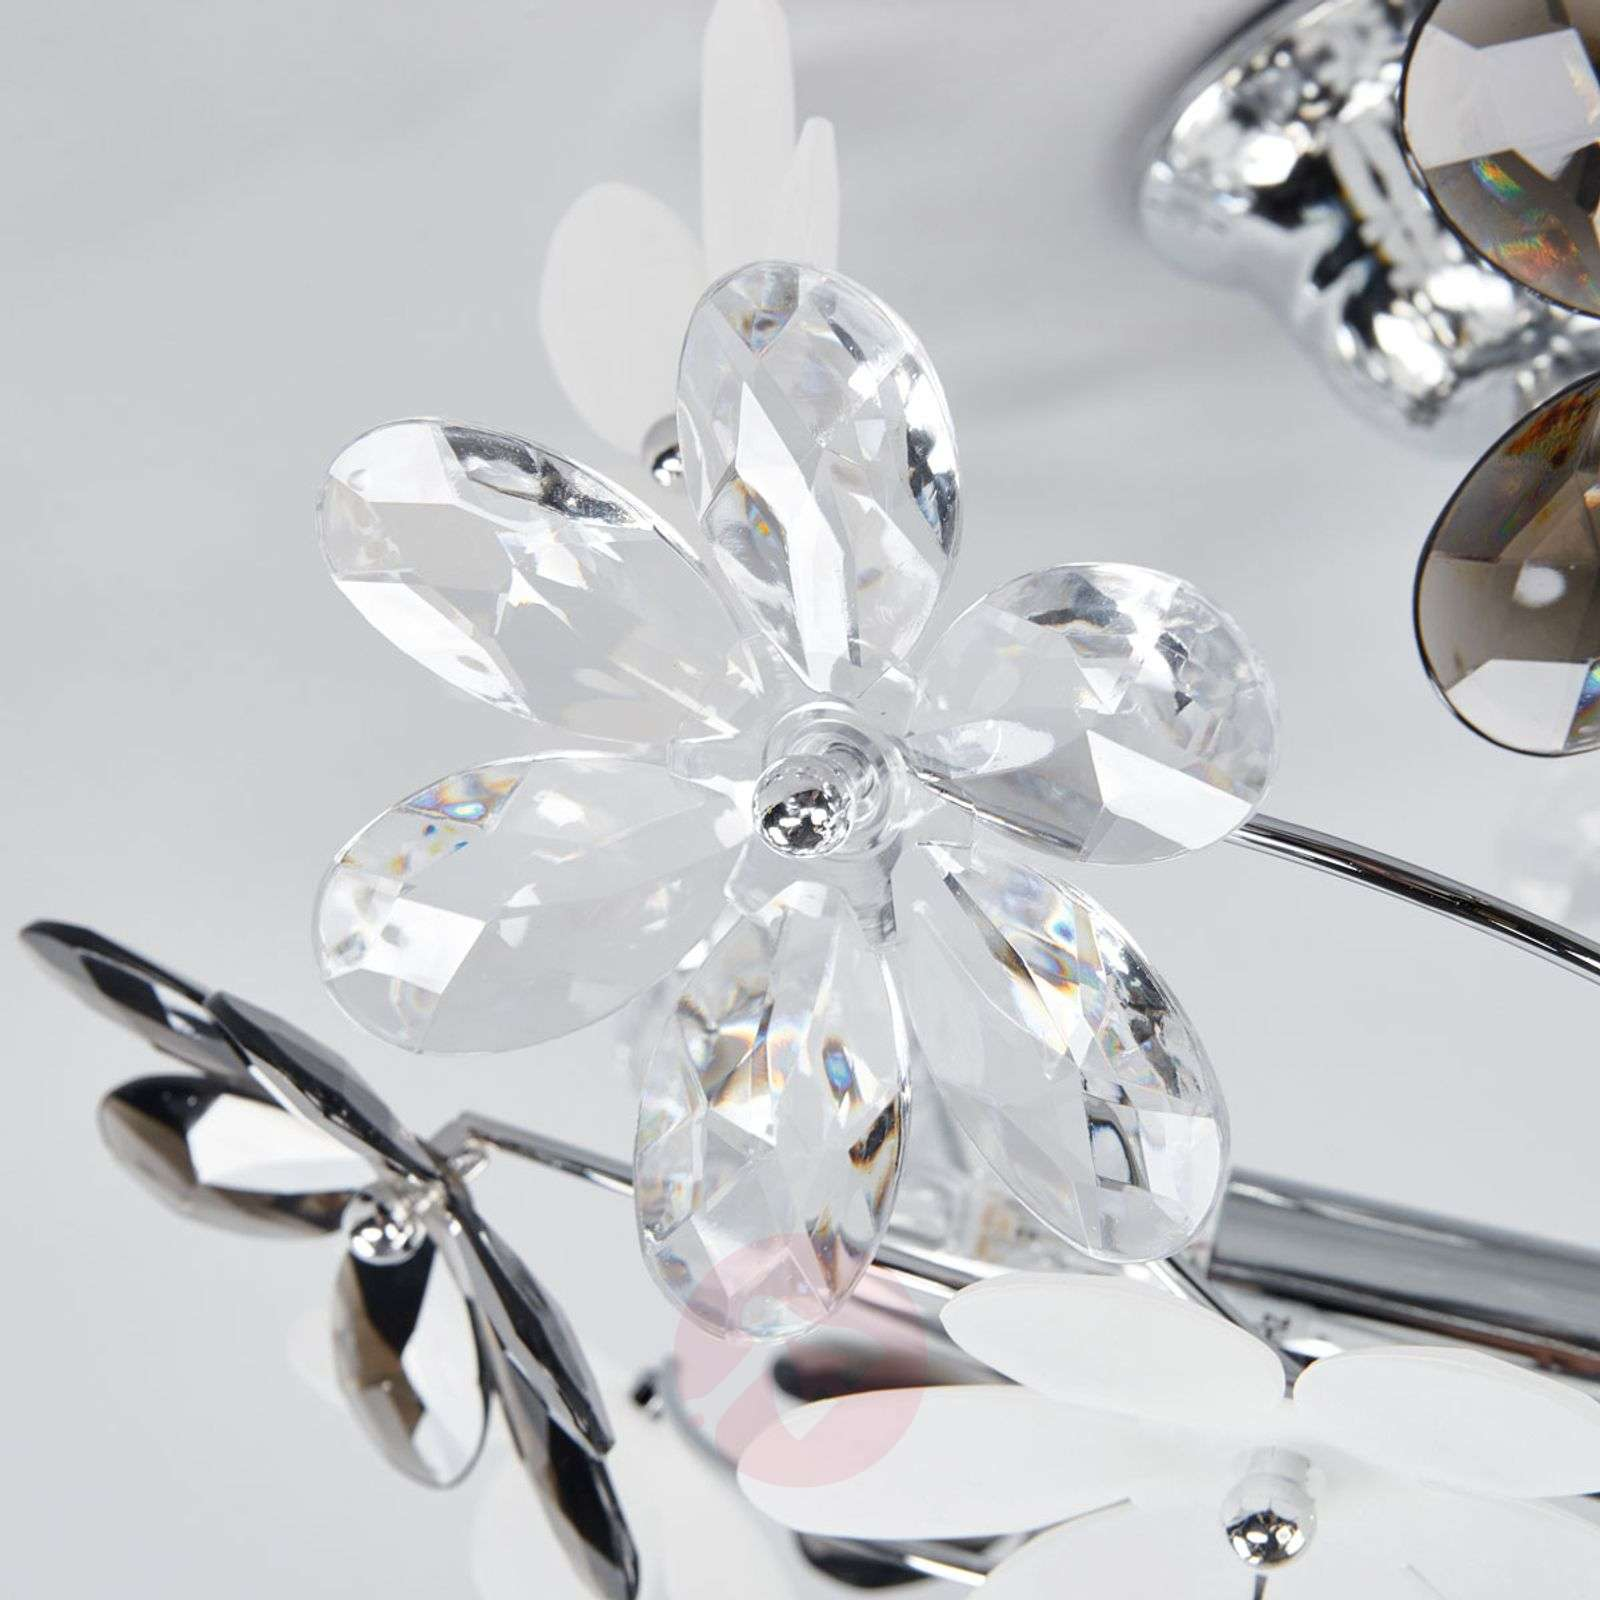 ... Flower Ceiling Lamp With Transparent Blossoms 4014583 01 ...